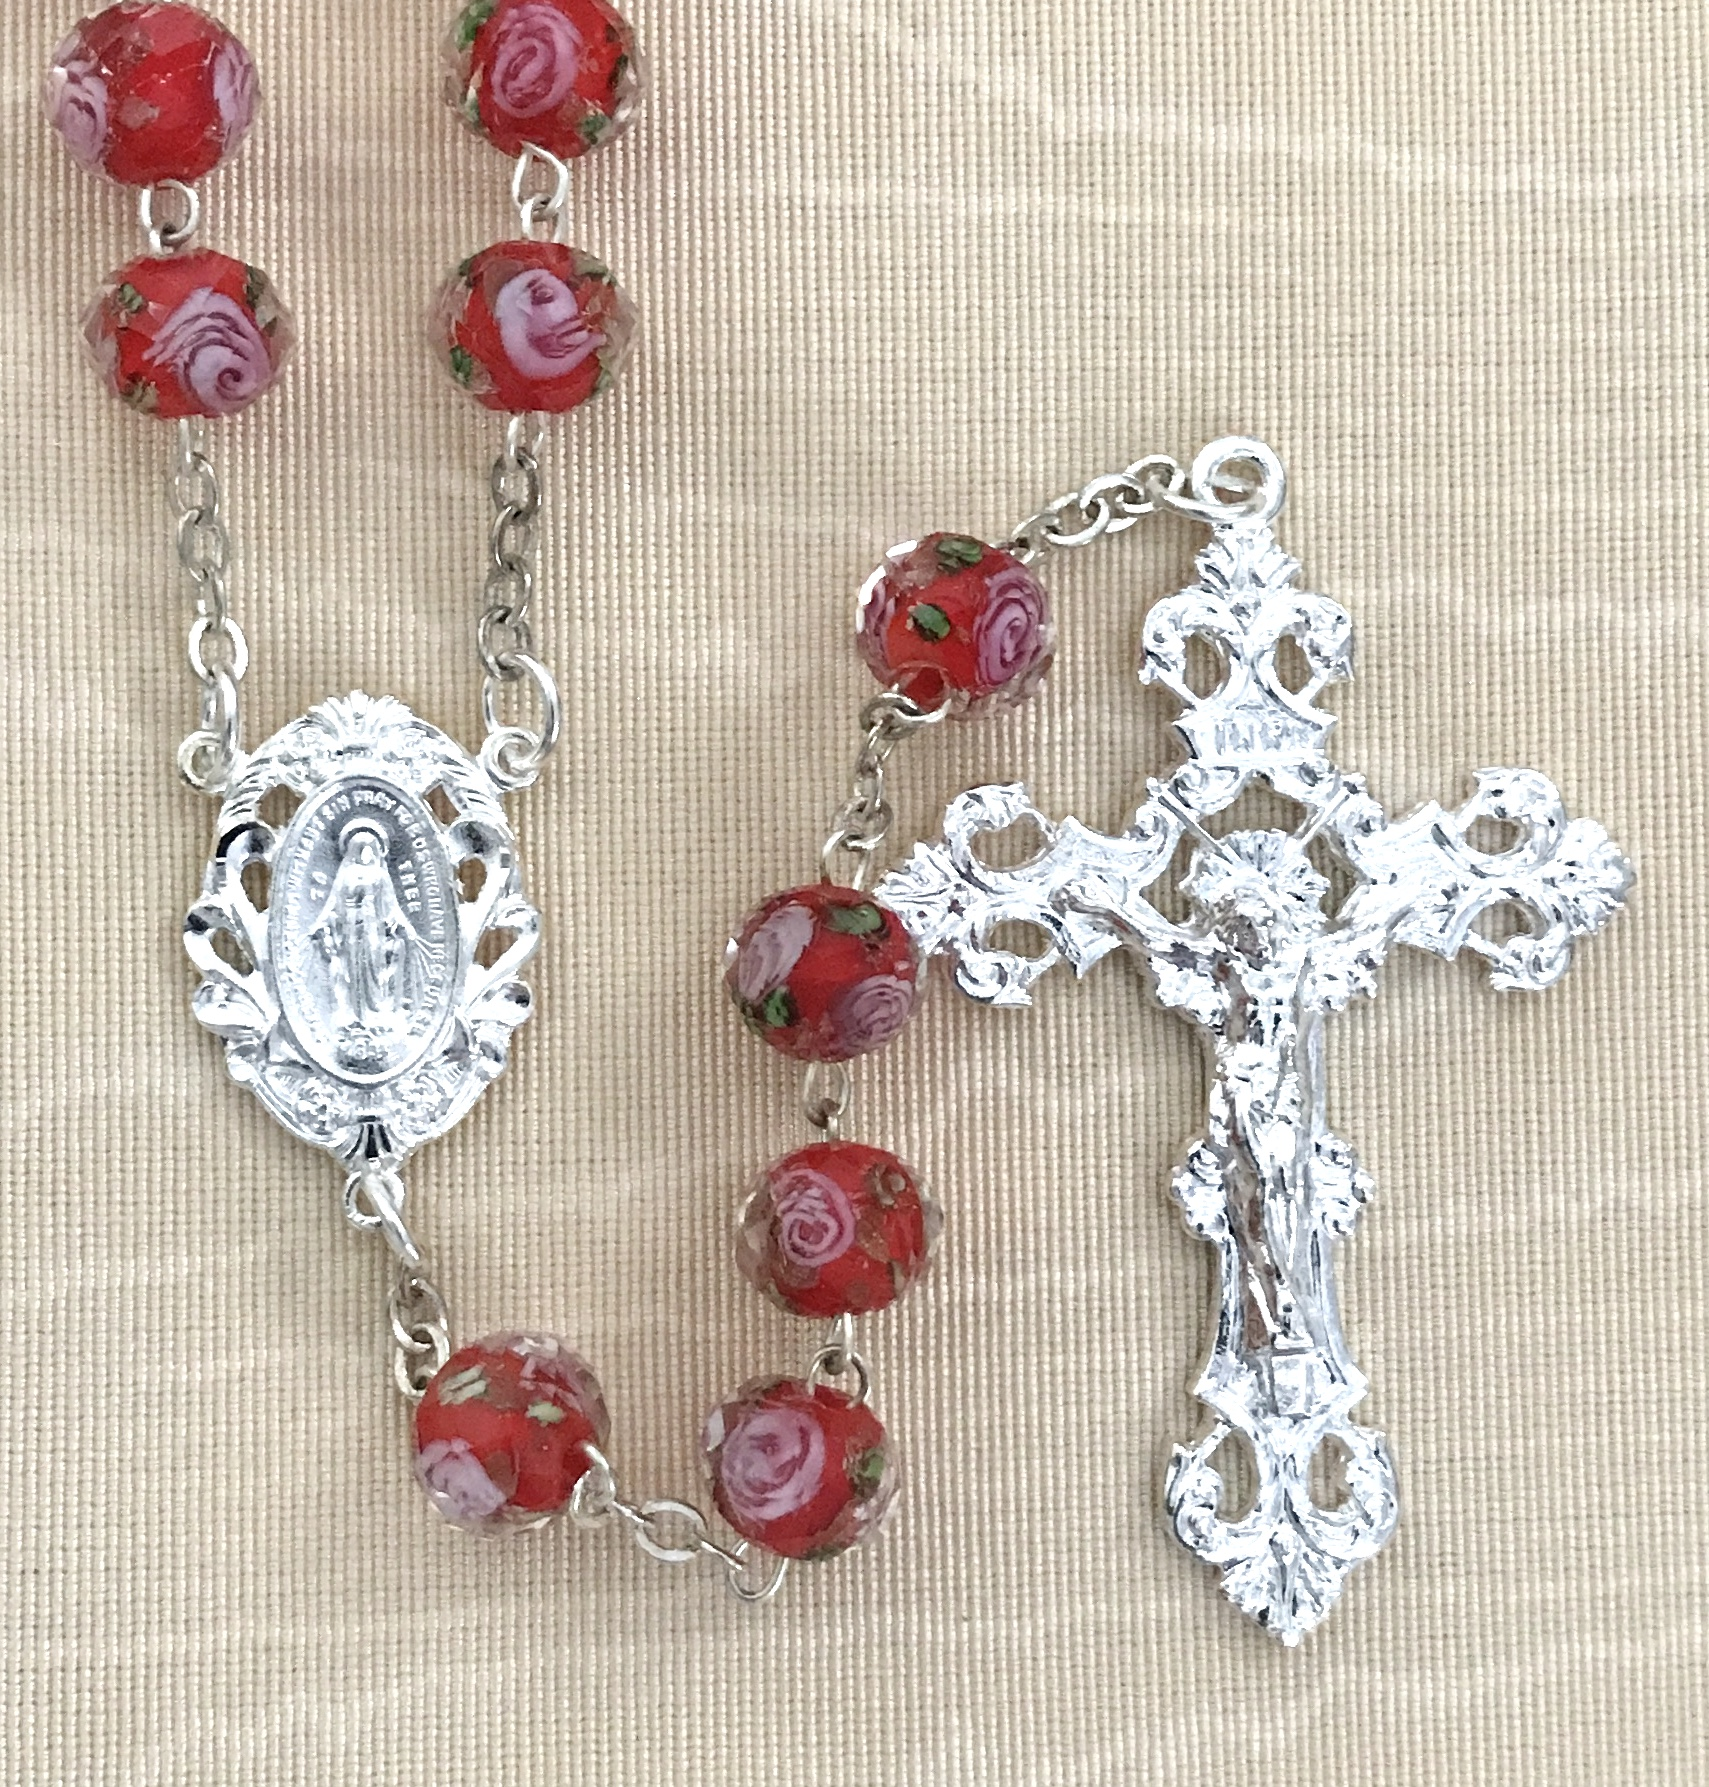 10x8MM RUBY HAND PAINTED ROSE  ROSARY WITH STERLING SILVER PLATED CRUCIFIX AND CENTER GIFT BOXED